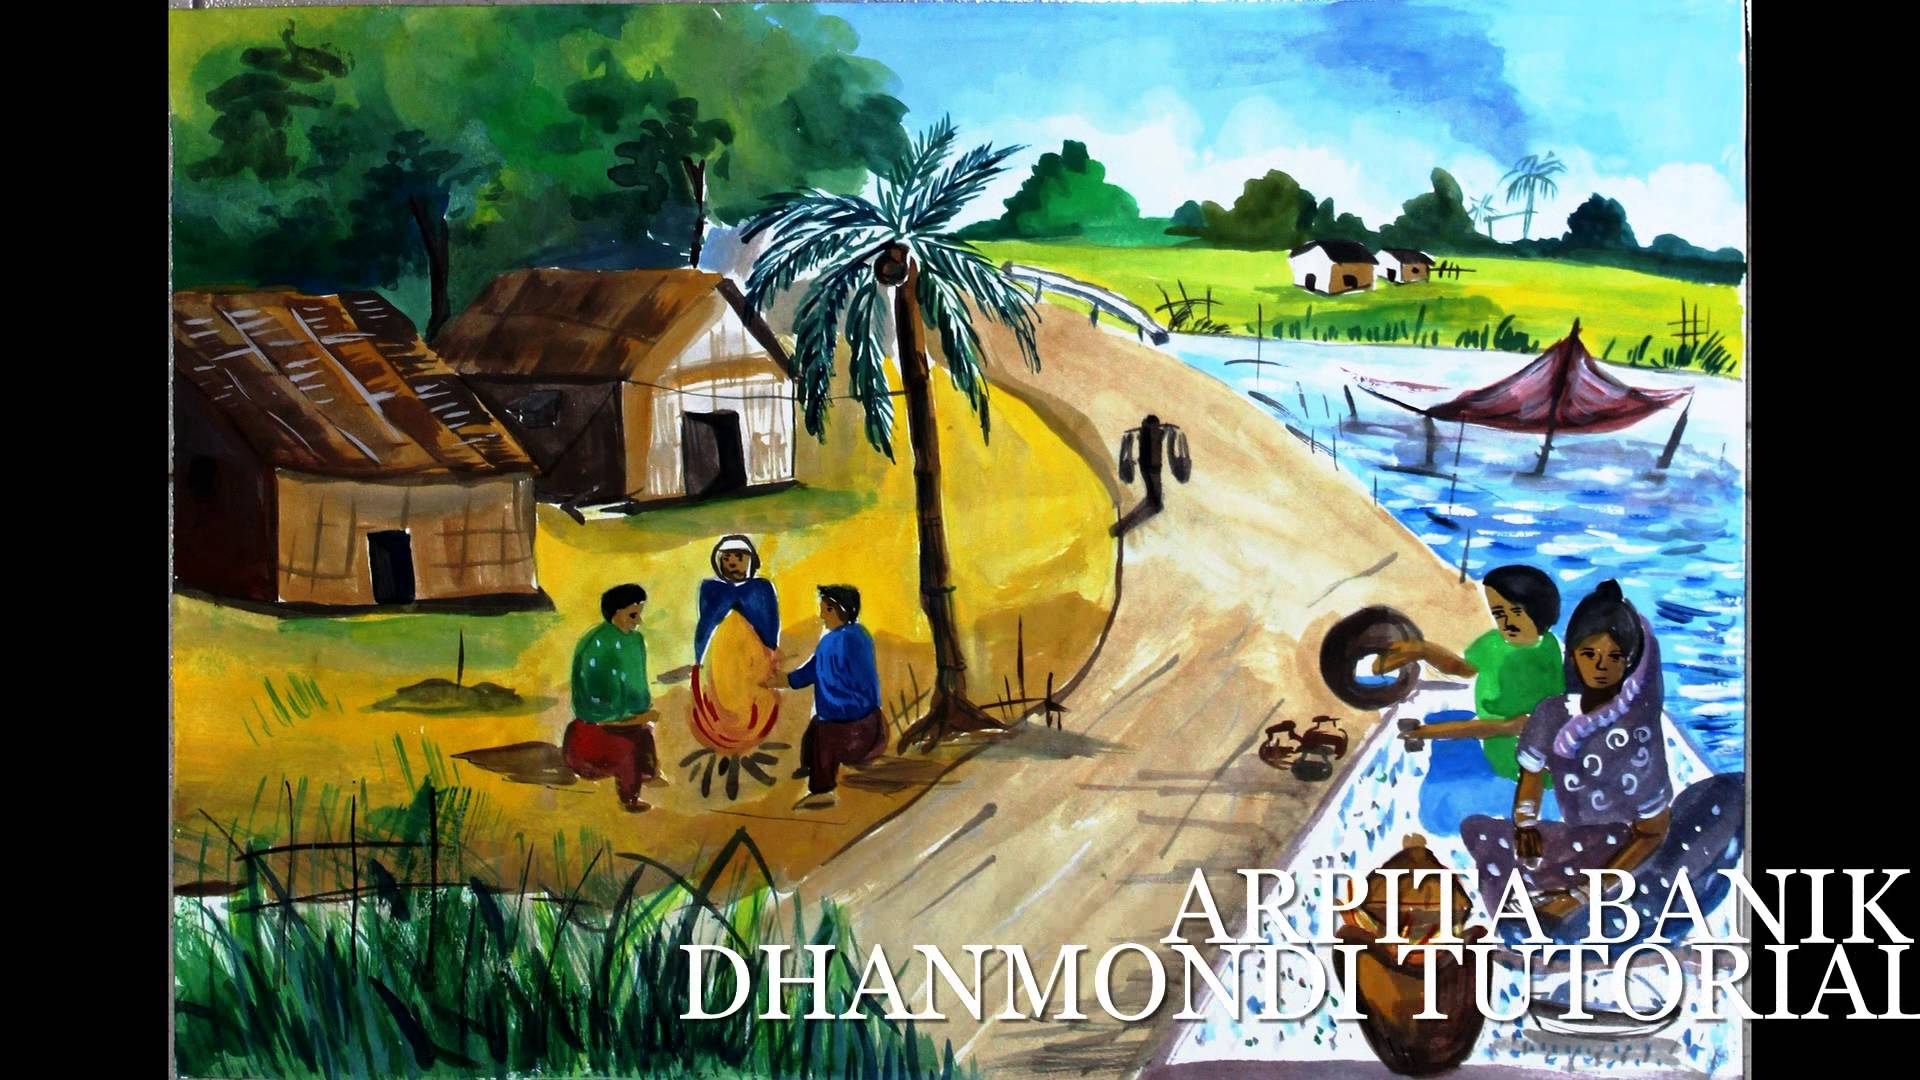 Drawn scenery day BANGLA from Drawing Pictures OLYMPIAD